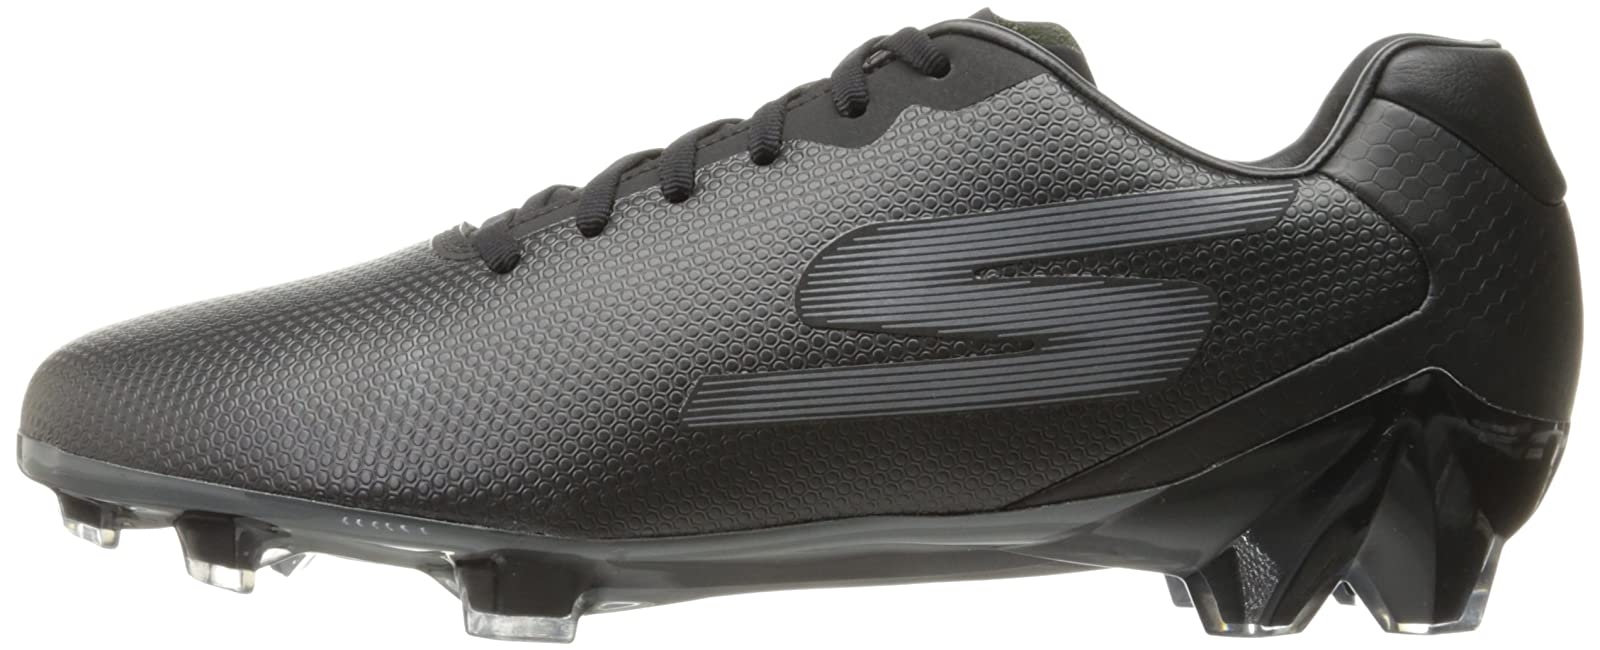 Skechers Performance Men's Go Galaxy FG White/Black - 5